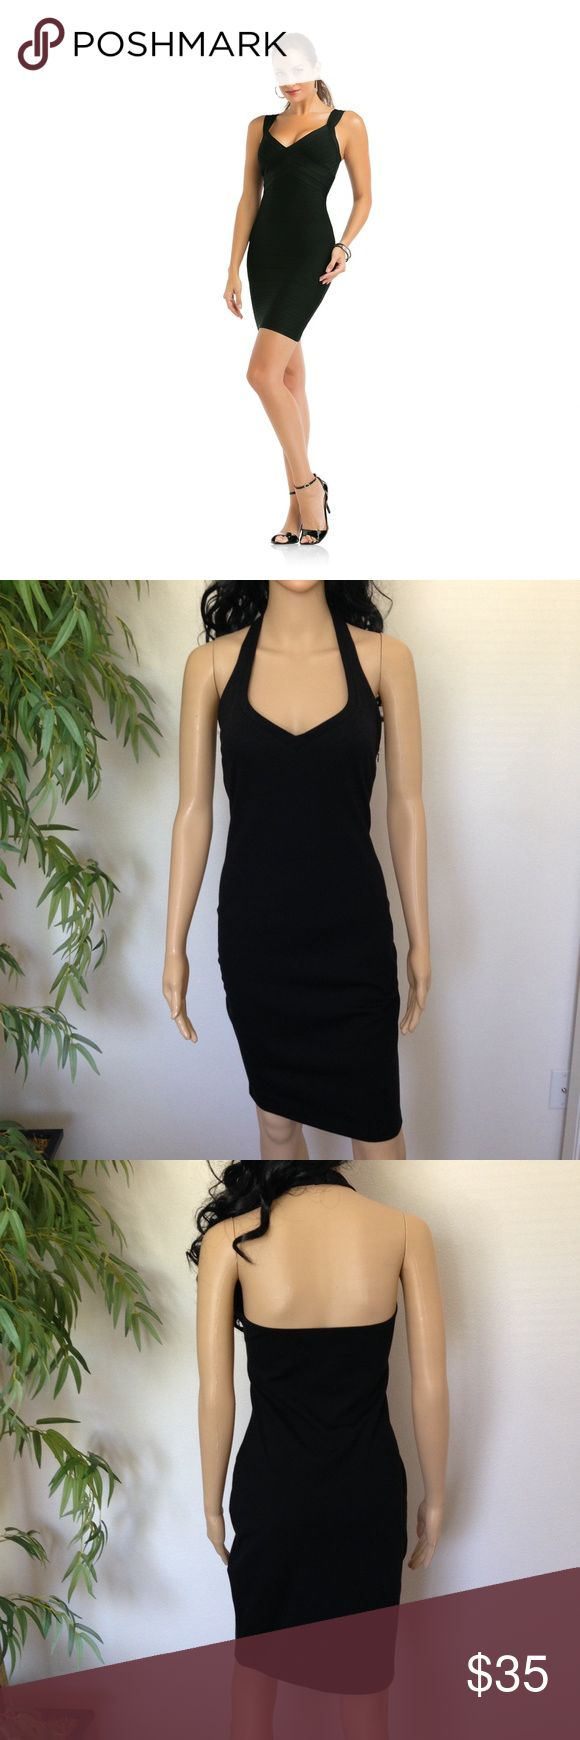 "Halter Top Sexy Little Black Dress size Large Final Price!!! Brand new little black dress super sexy halter top style open back 30"" in length with lots of stretch to it No Trades Kardashian Kollection Dresses"